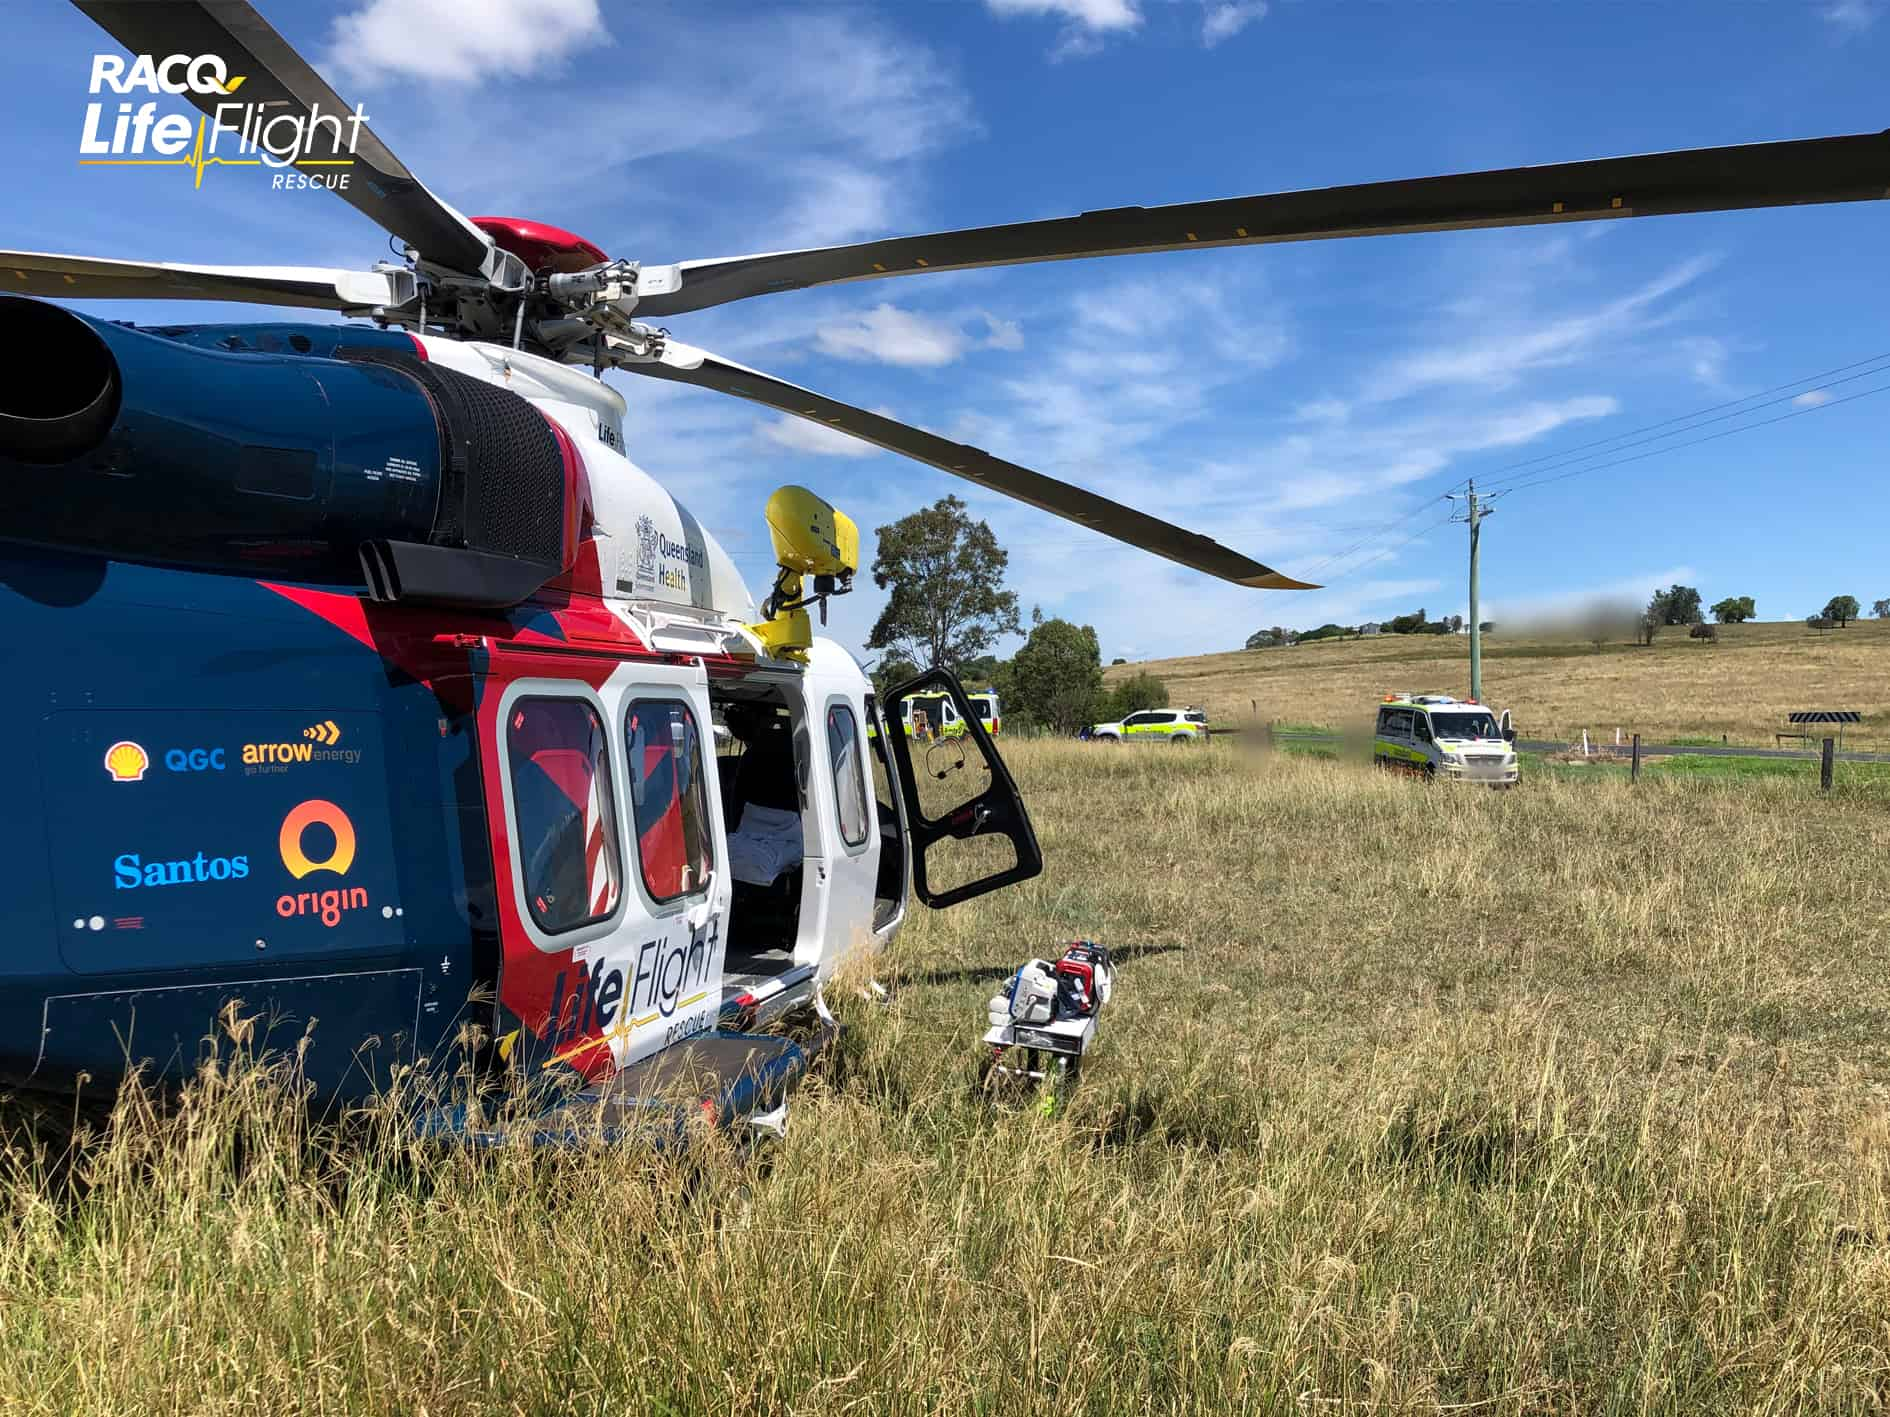 Seriously injured teenager airlifted after being thrown from ATV